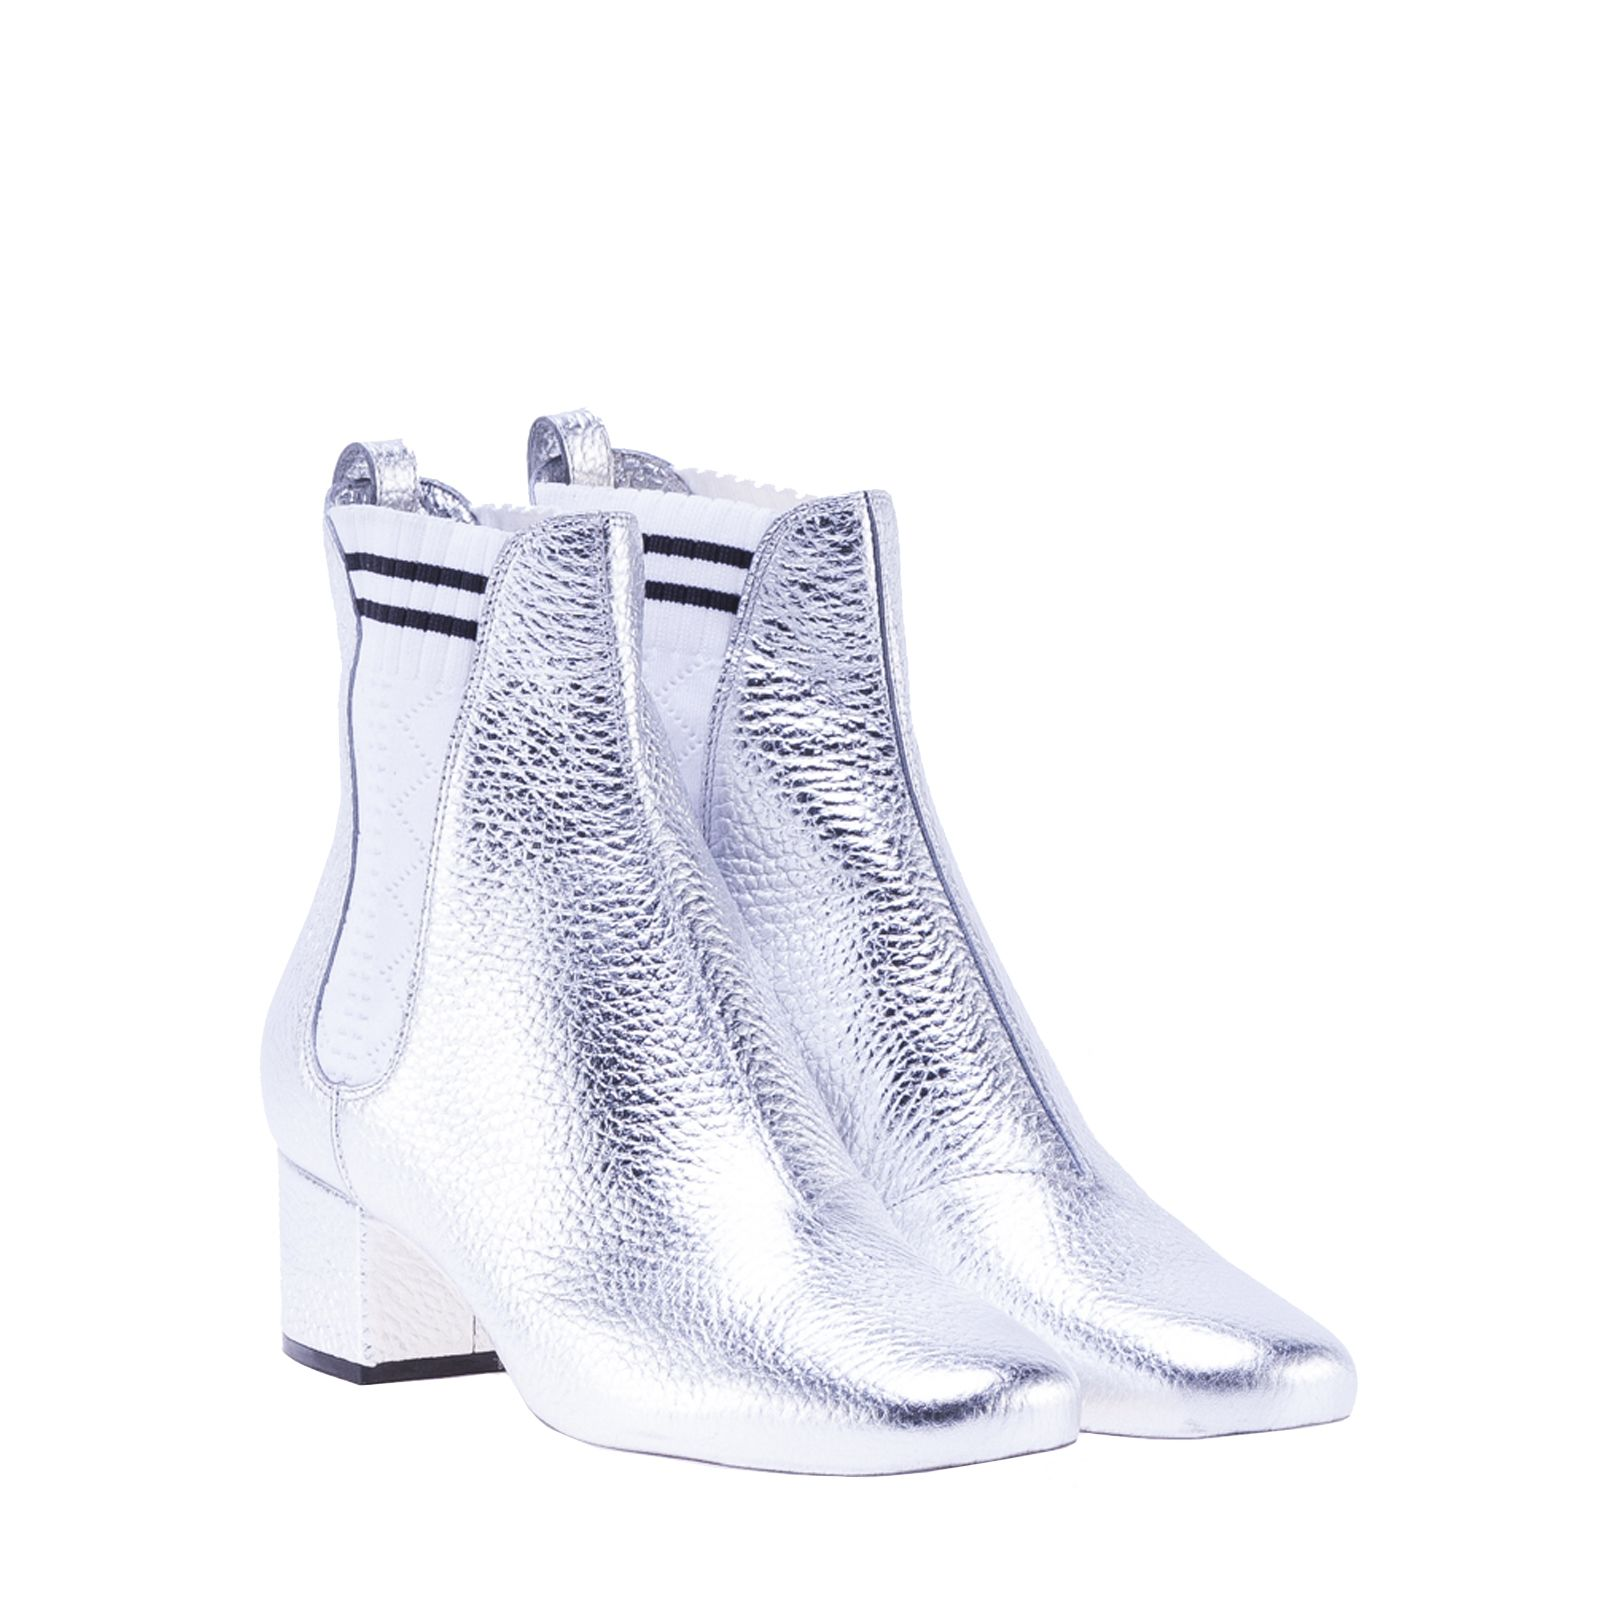 fendi fendi sock detail chelsea boots silver women 39 s boots italist. Black Bedroom Furniture Sets. Home Design Ideas